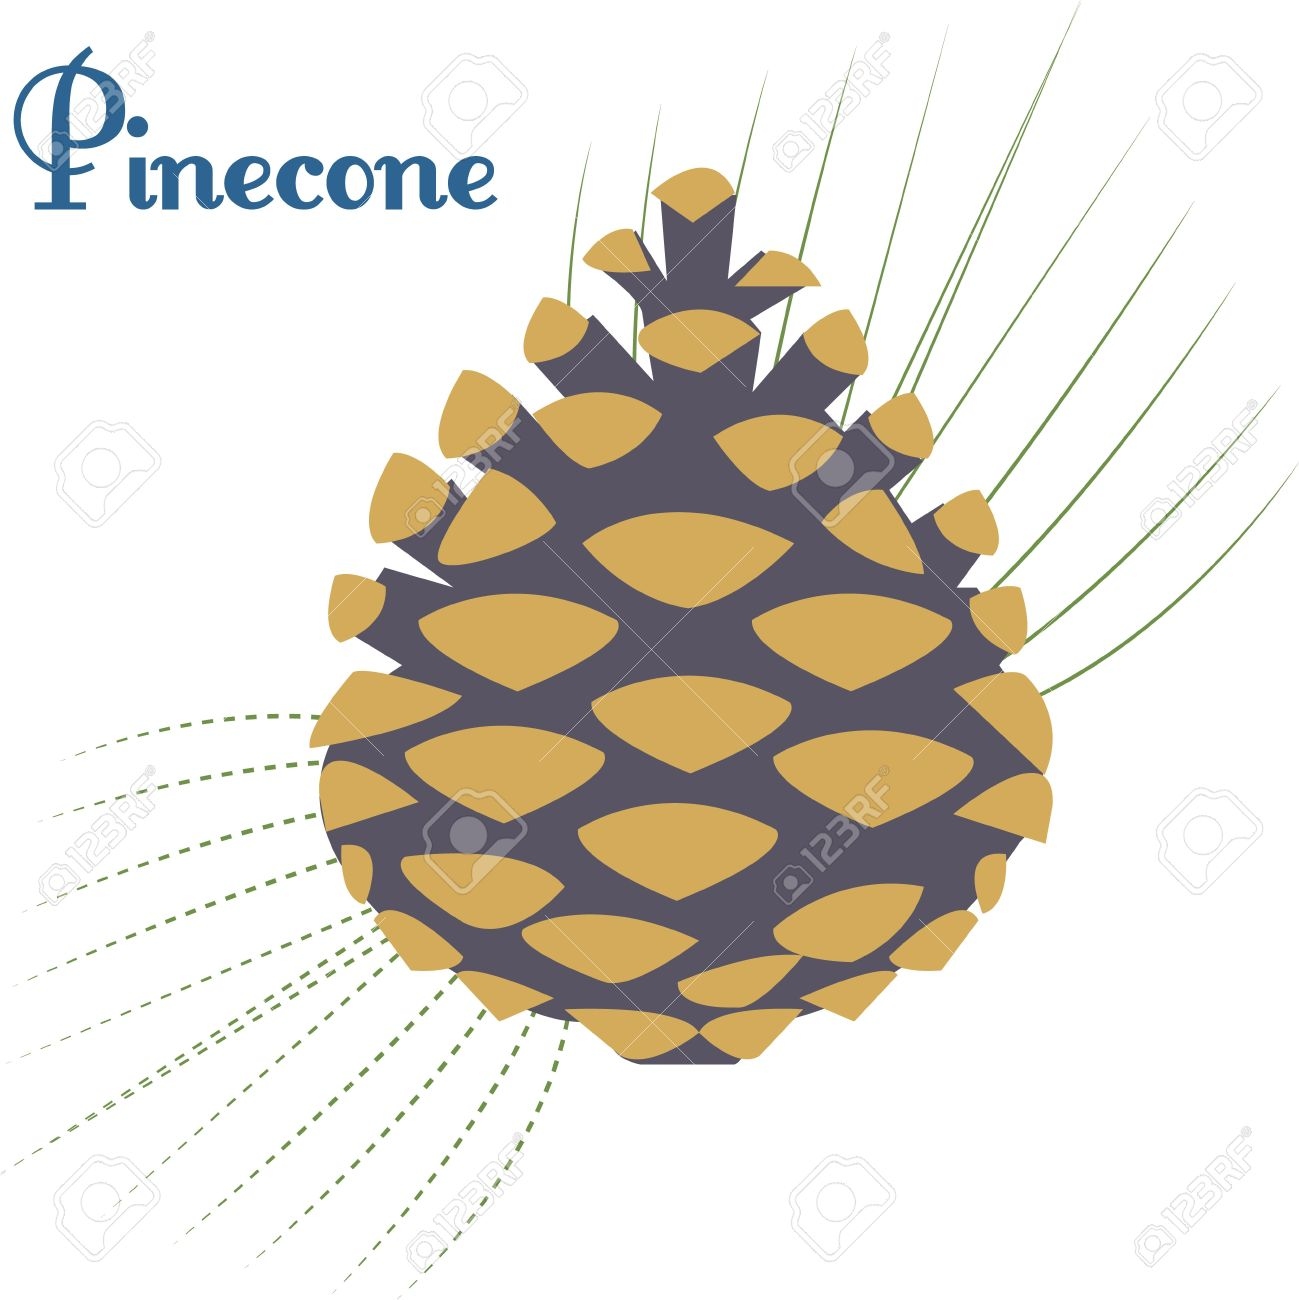 A Pinecone Accented With A Spray Of Pine Needles Makes A Striking.